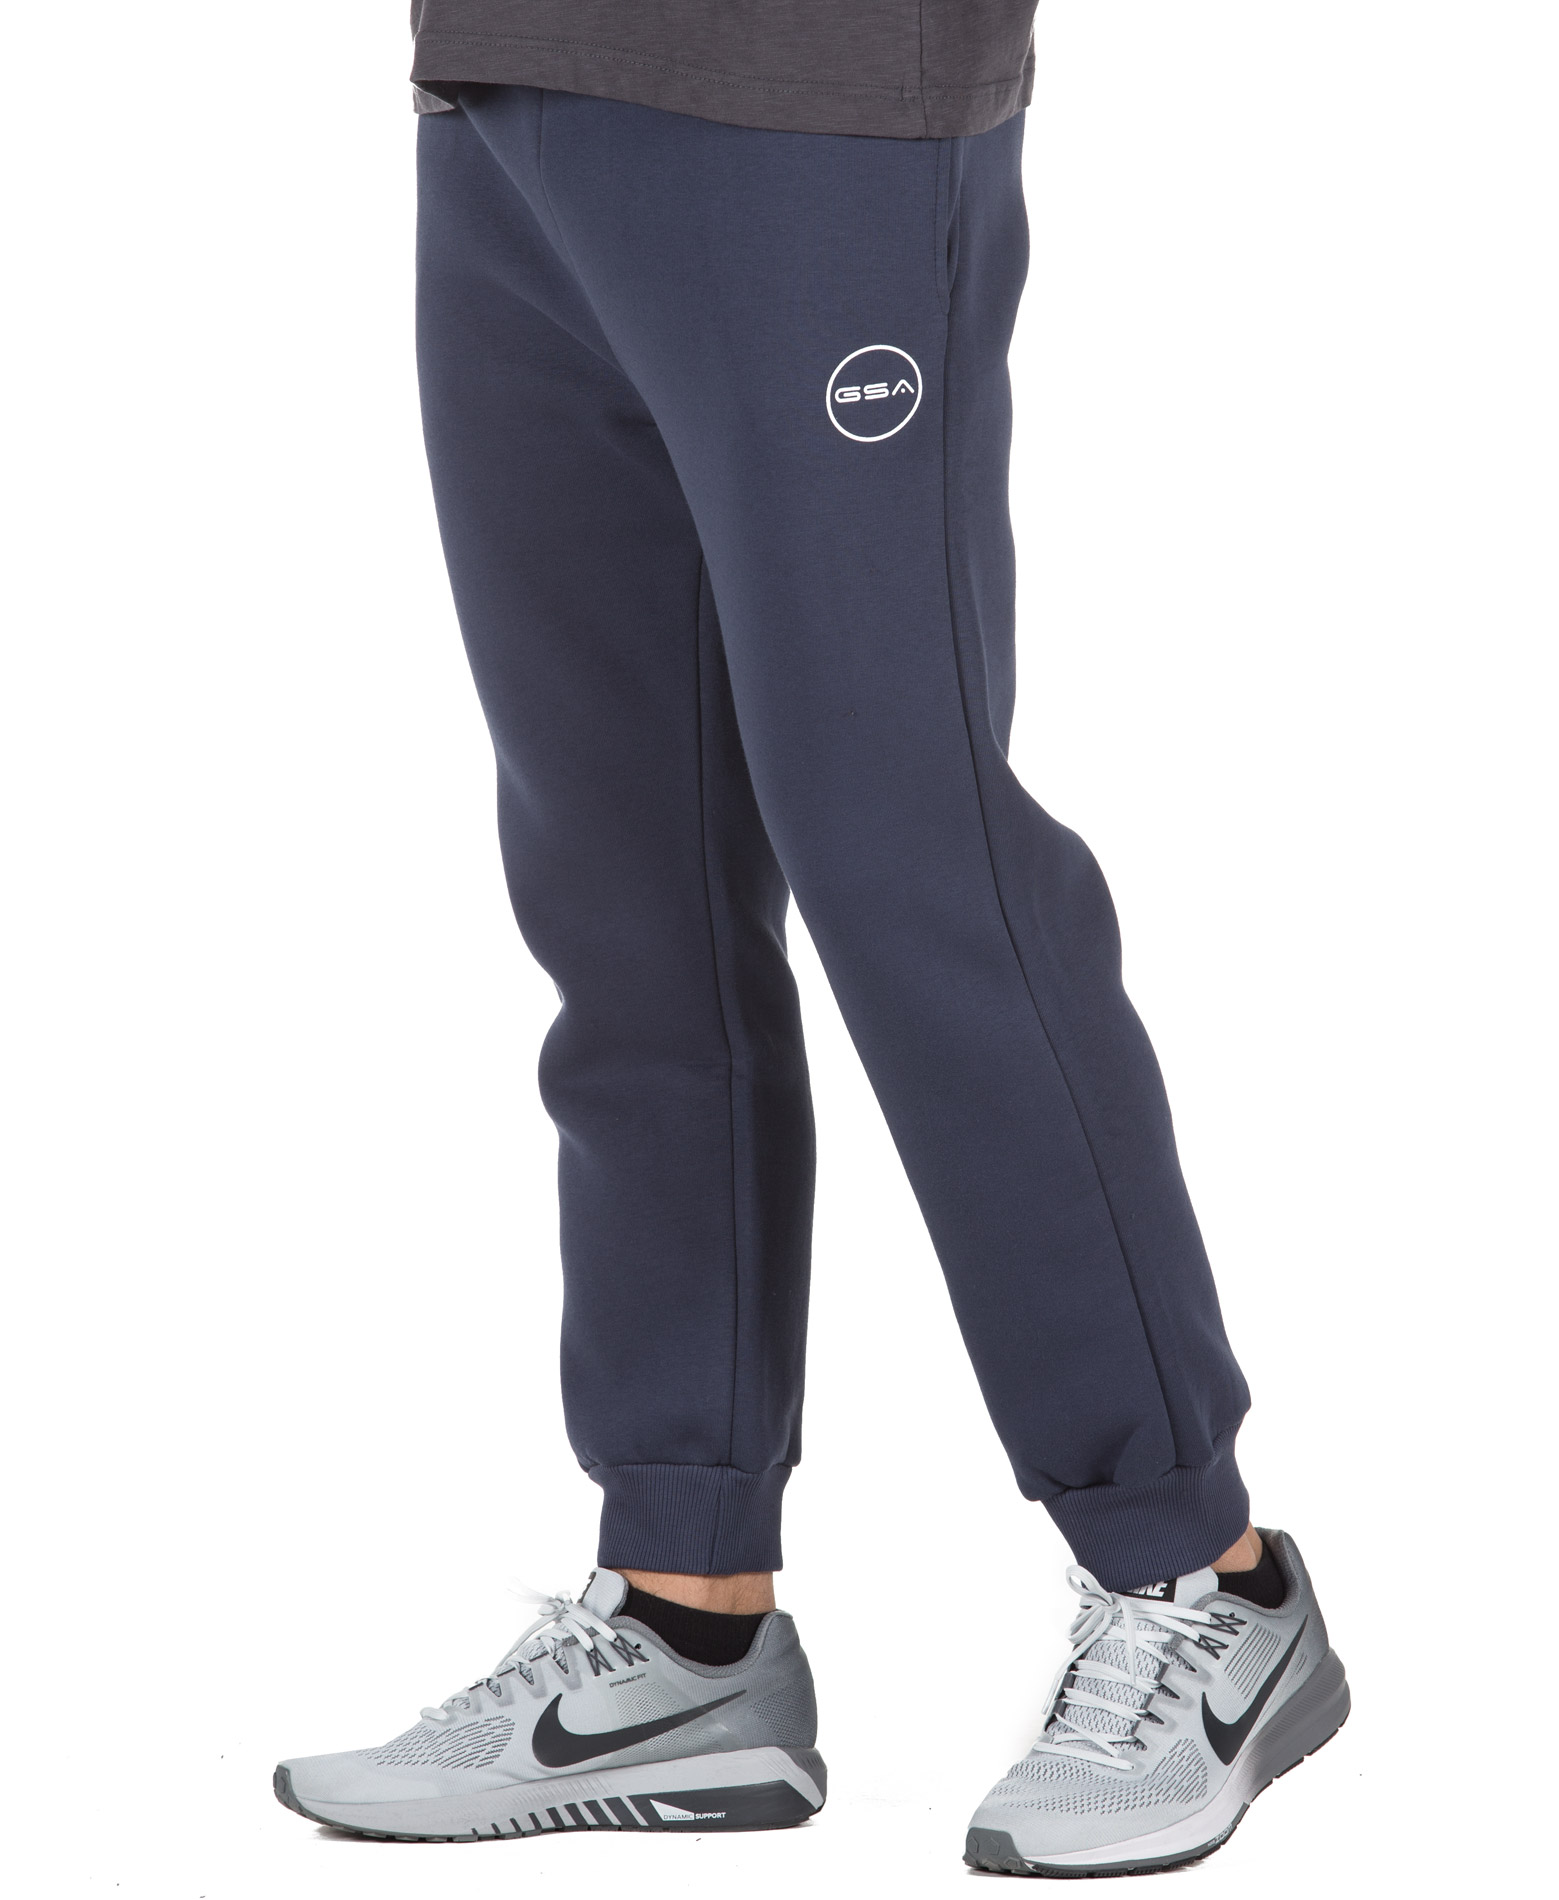 GSA SUPERCOTTON JOGGERS SWEATPANTS 17-17027-03 BLUE MARINE Μπλε